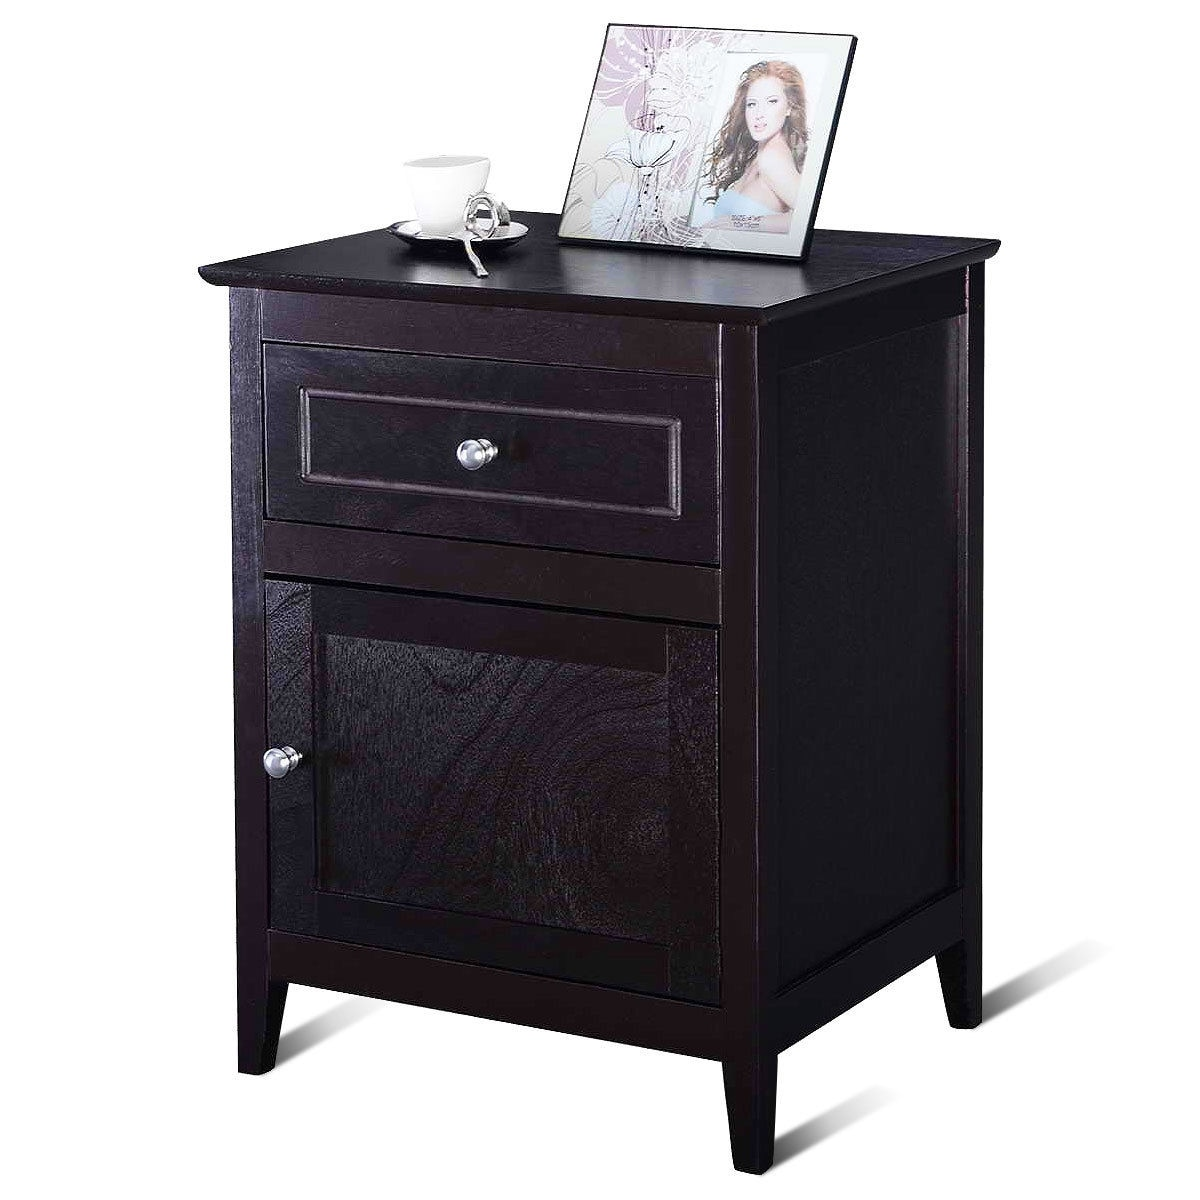 End Table For Living Room Costway End Table Nightstand Living Room Furniture Espresso Beechwood